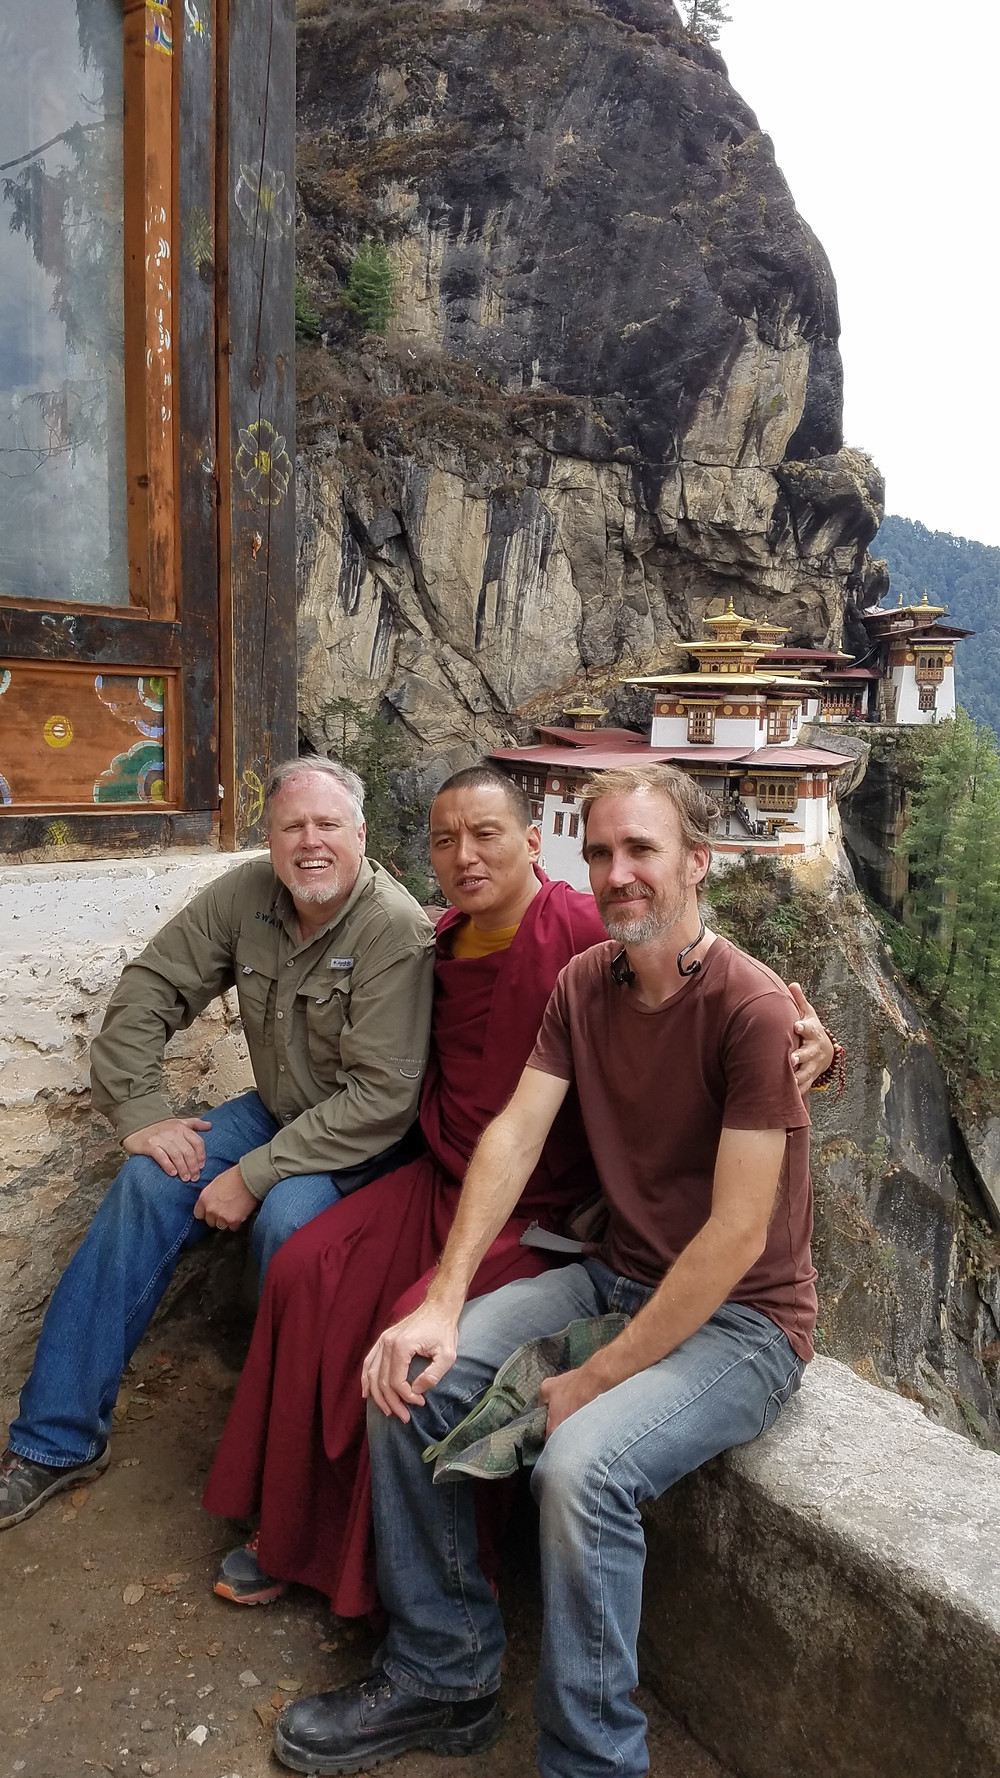 KEYSTONE PICTURES DP DARRYL RODE, MONK NEYGAN, DP/MATT PERRY AT THE TOP OF THE TRAIL WITH A VIEW TO THE TIGER'S NEST